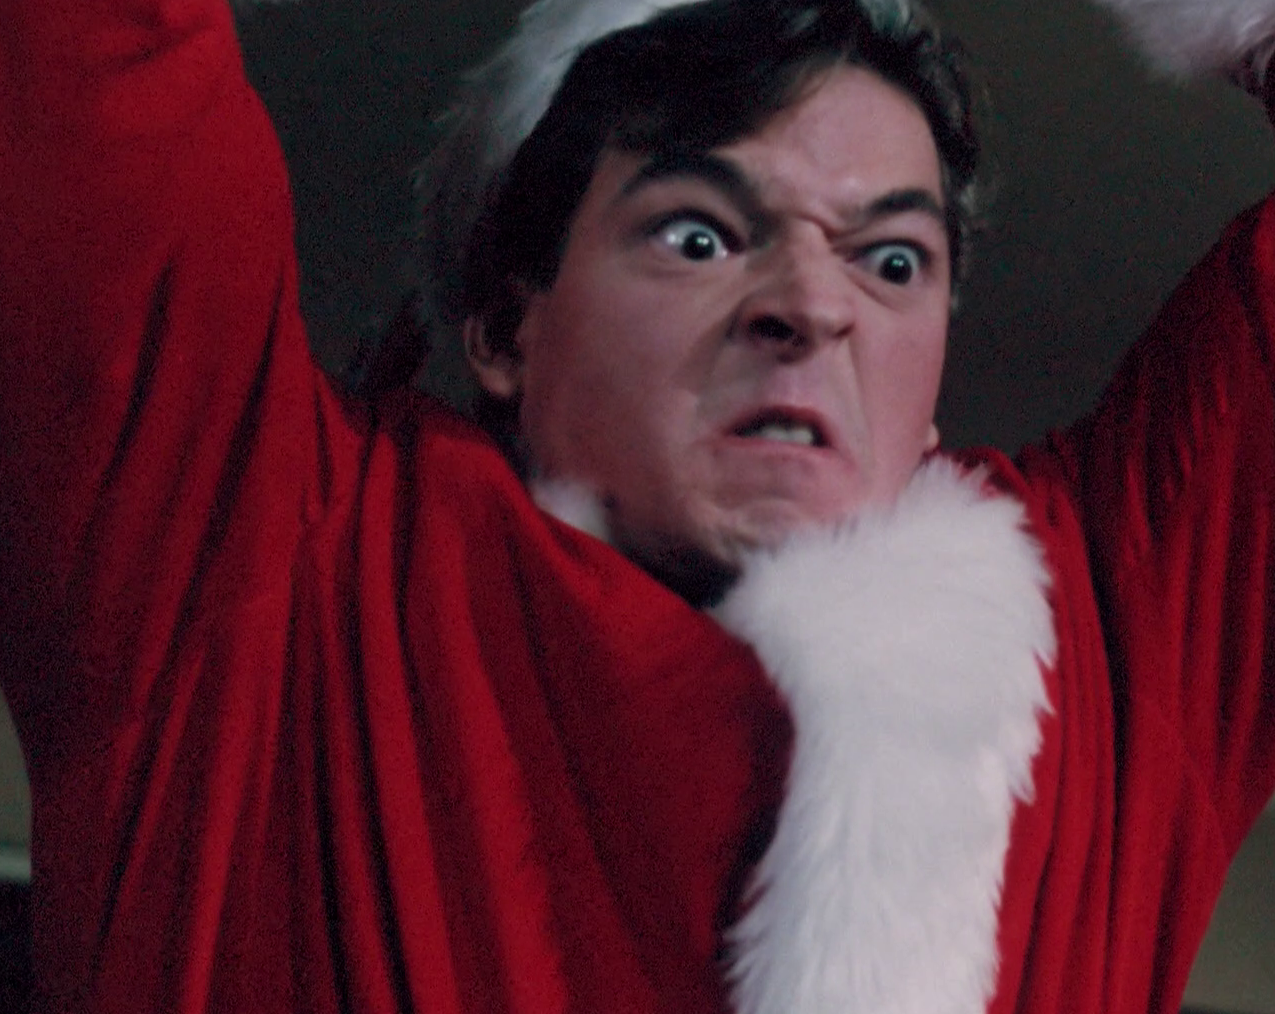 silent night deadly night part 2 70 e1608299386911 30 Films From The 80s That Are So Bad They're Actually Good